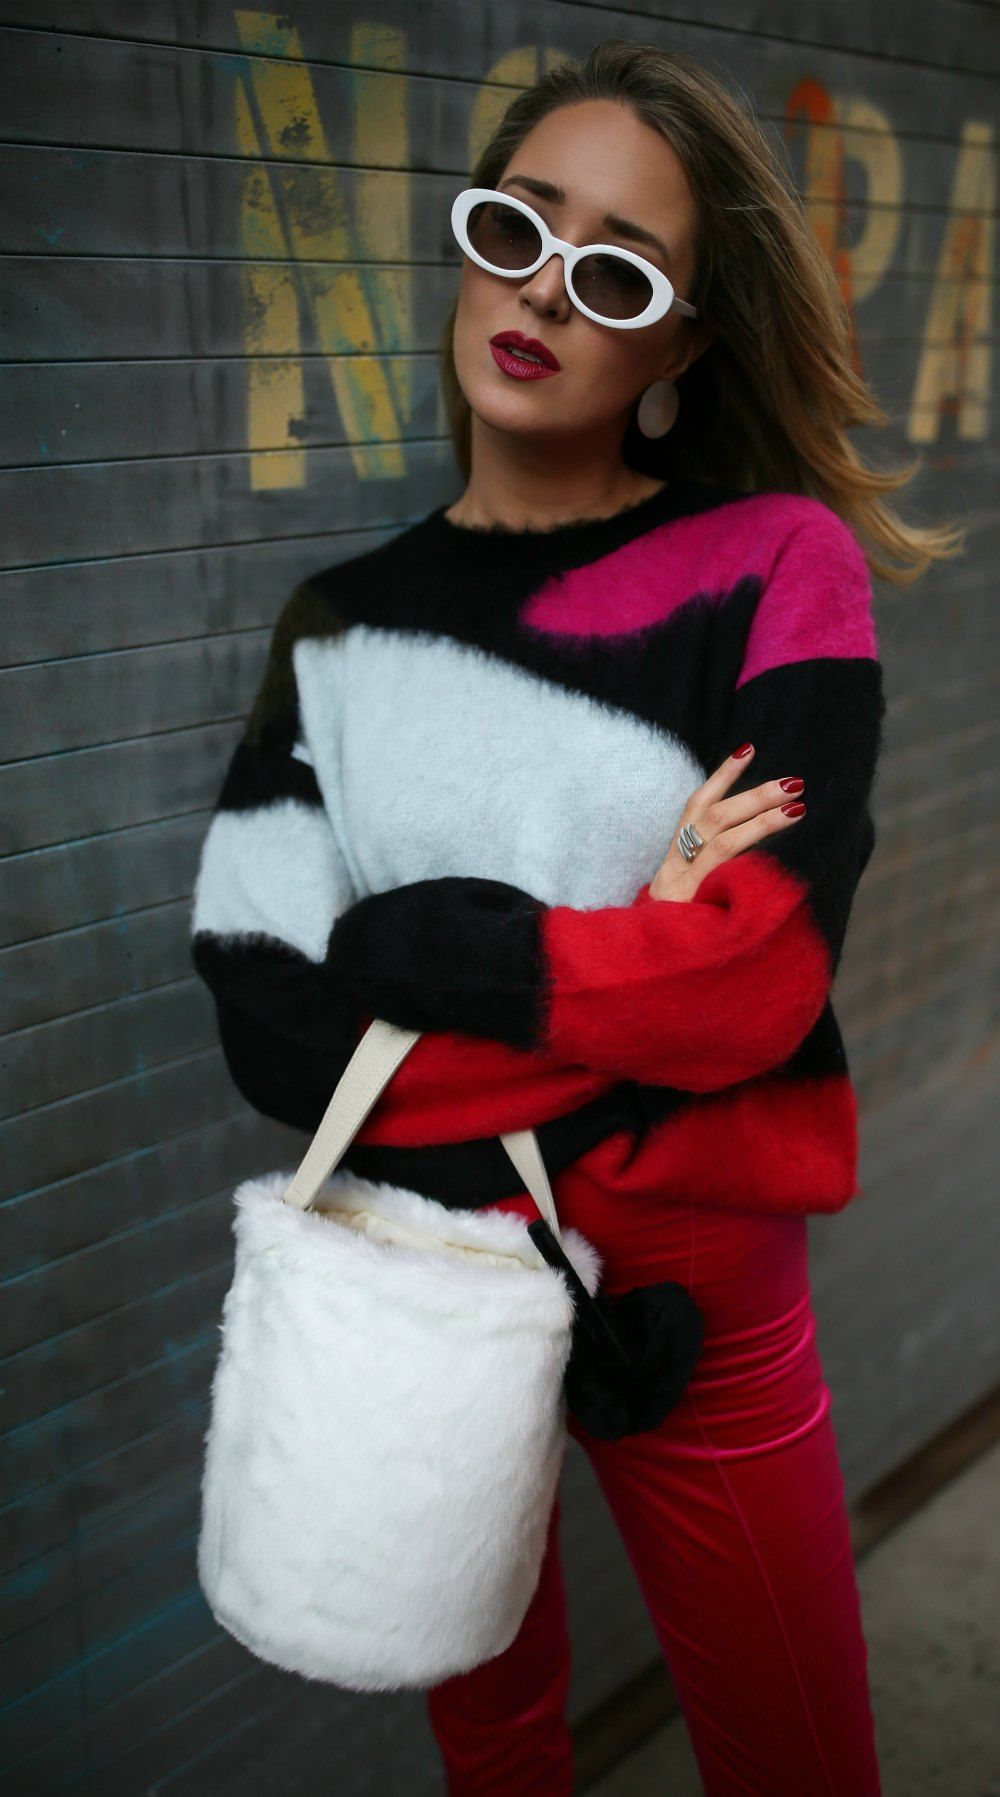 d047655515a27 Ski Trip Must-Haves // Black red white color block sweater, hot pink velvet  skinny pants, white heeled pointy toe booties, white oval sunglasses, ...